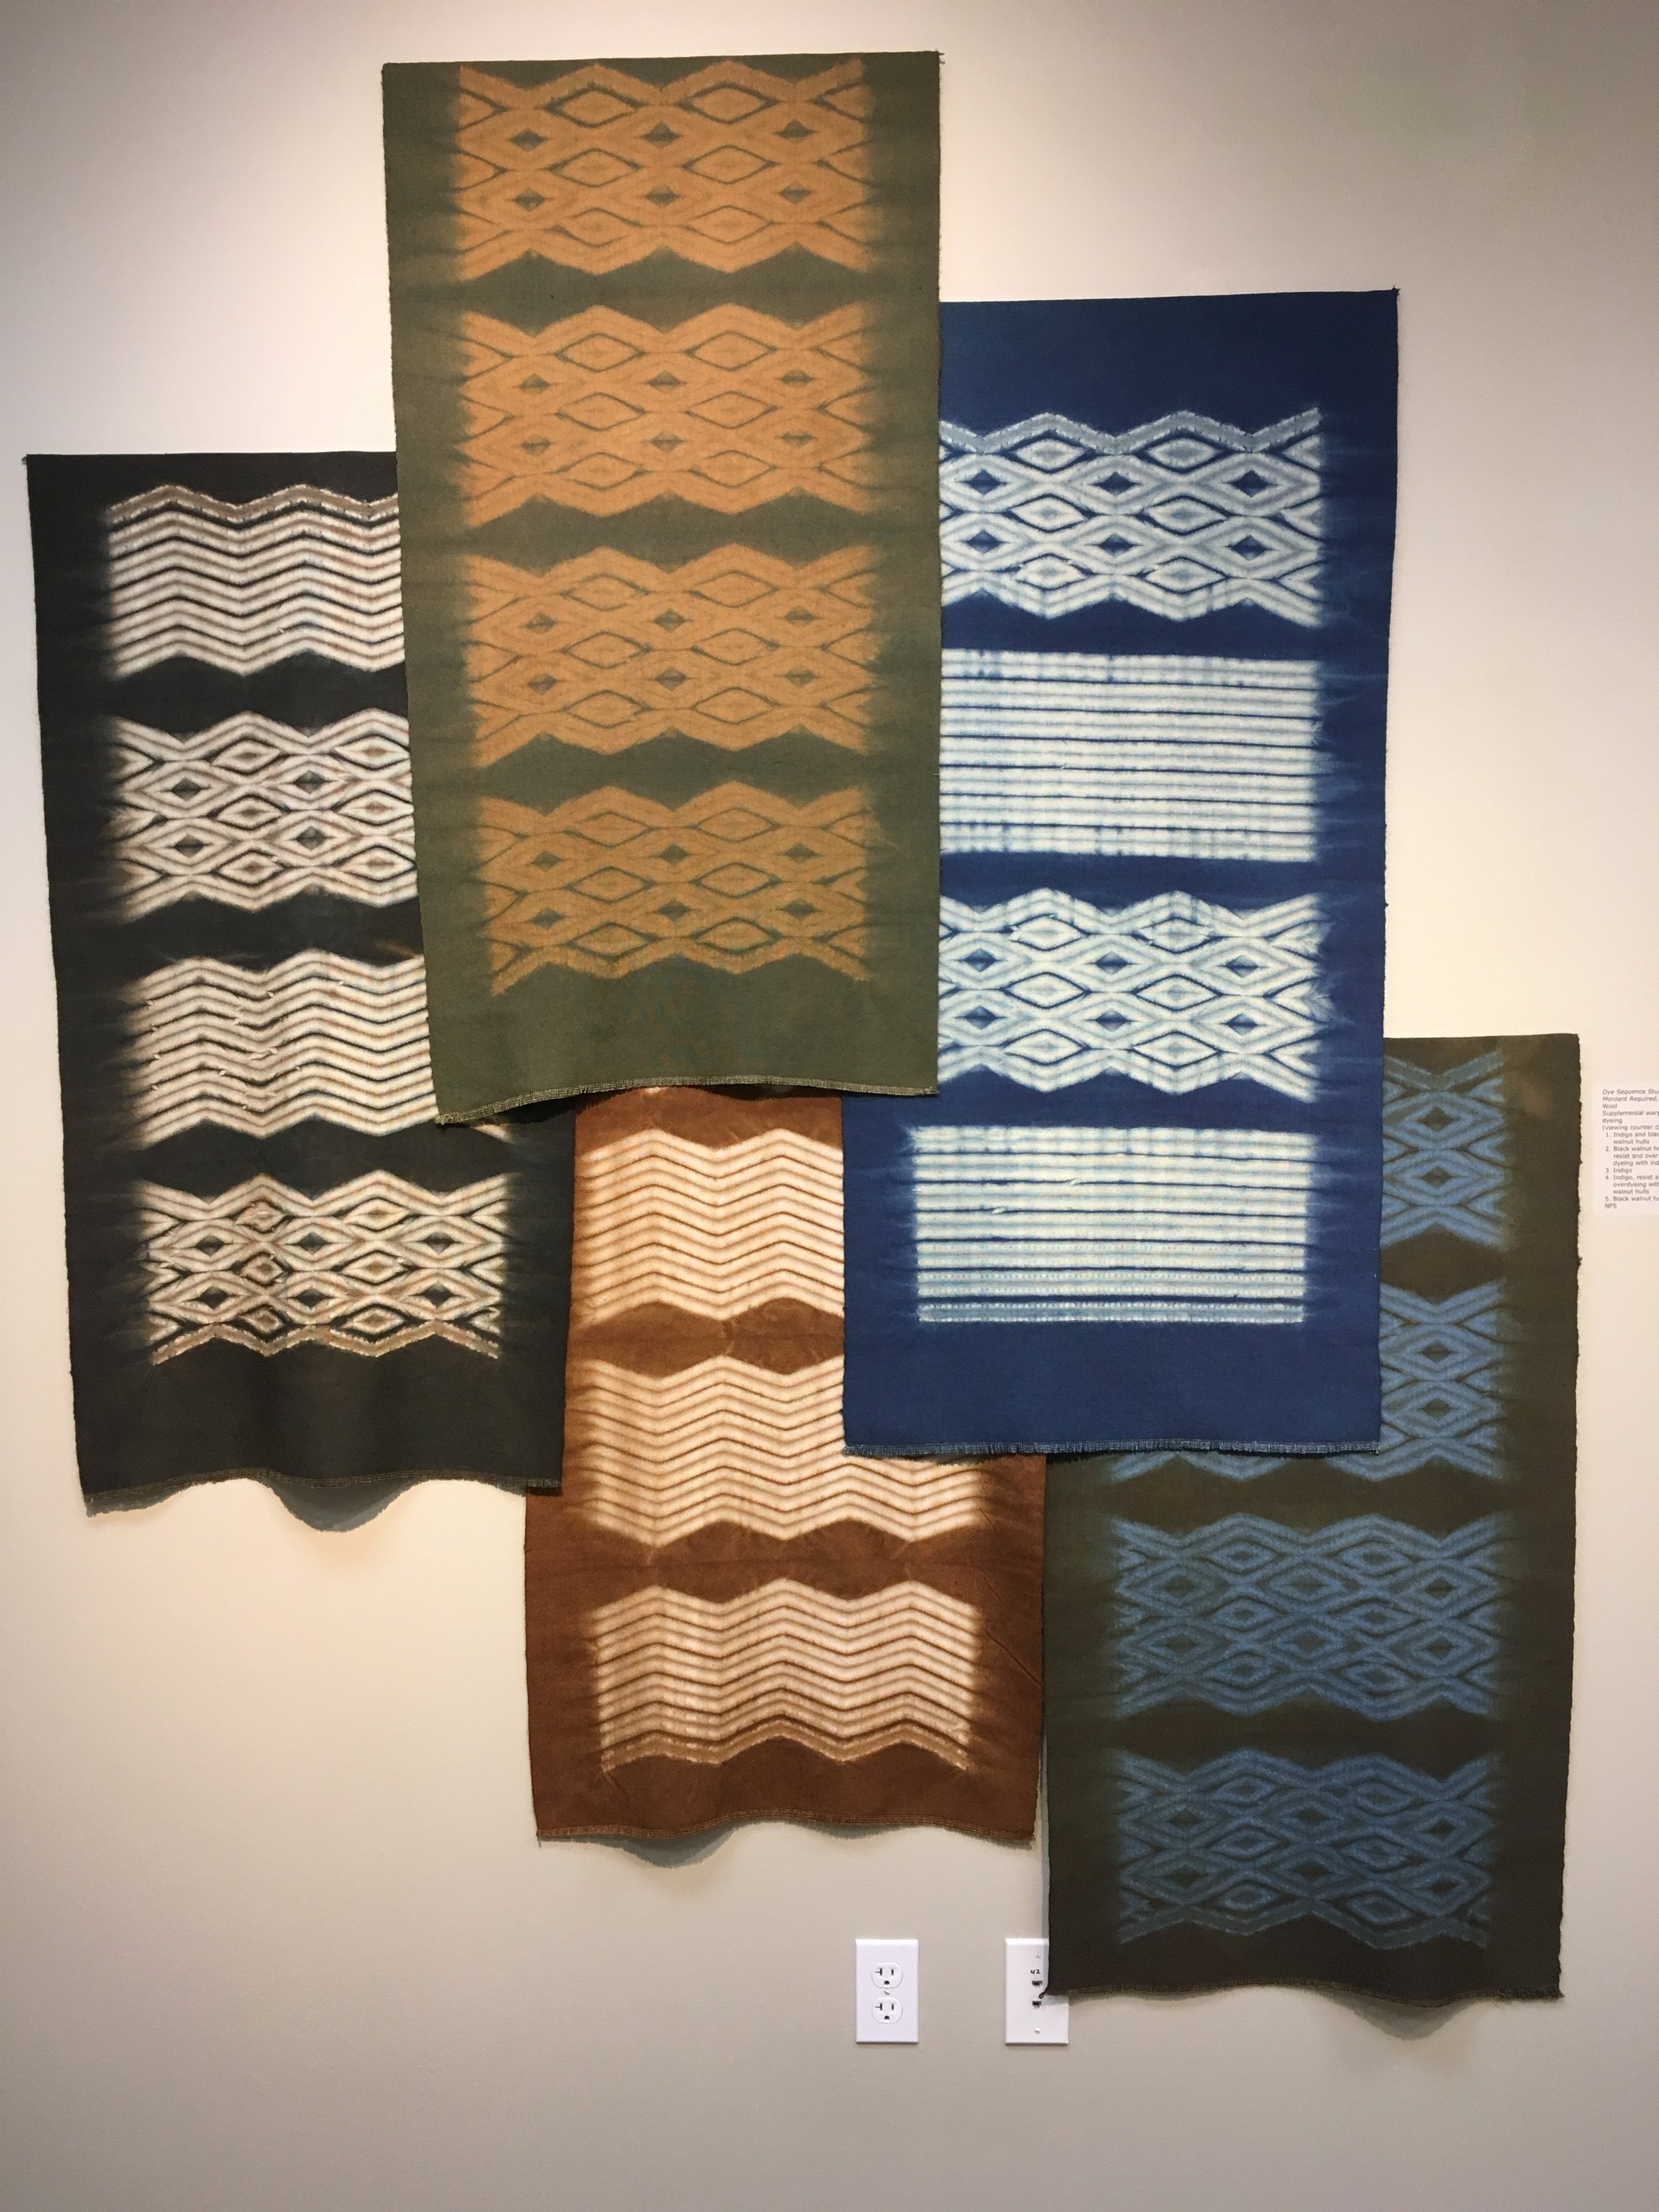 beautiful natural dyed woven shibori pieces by the amazing Catharine Ellis